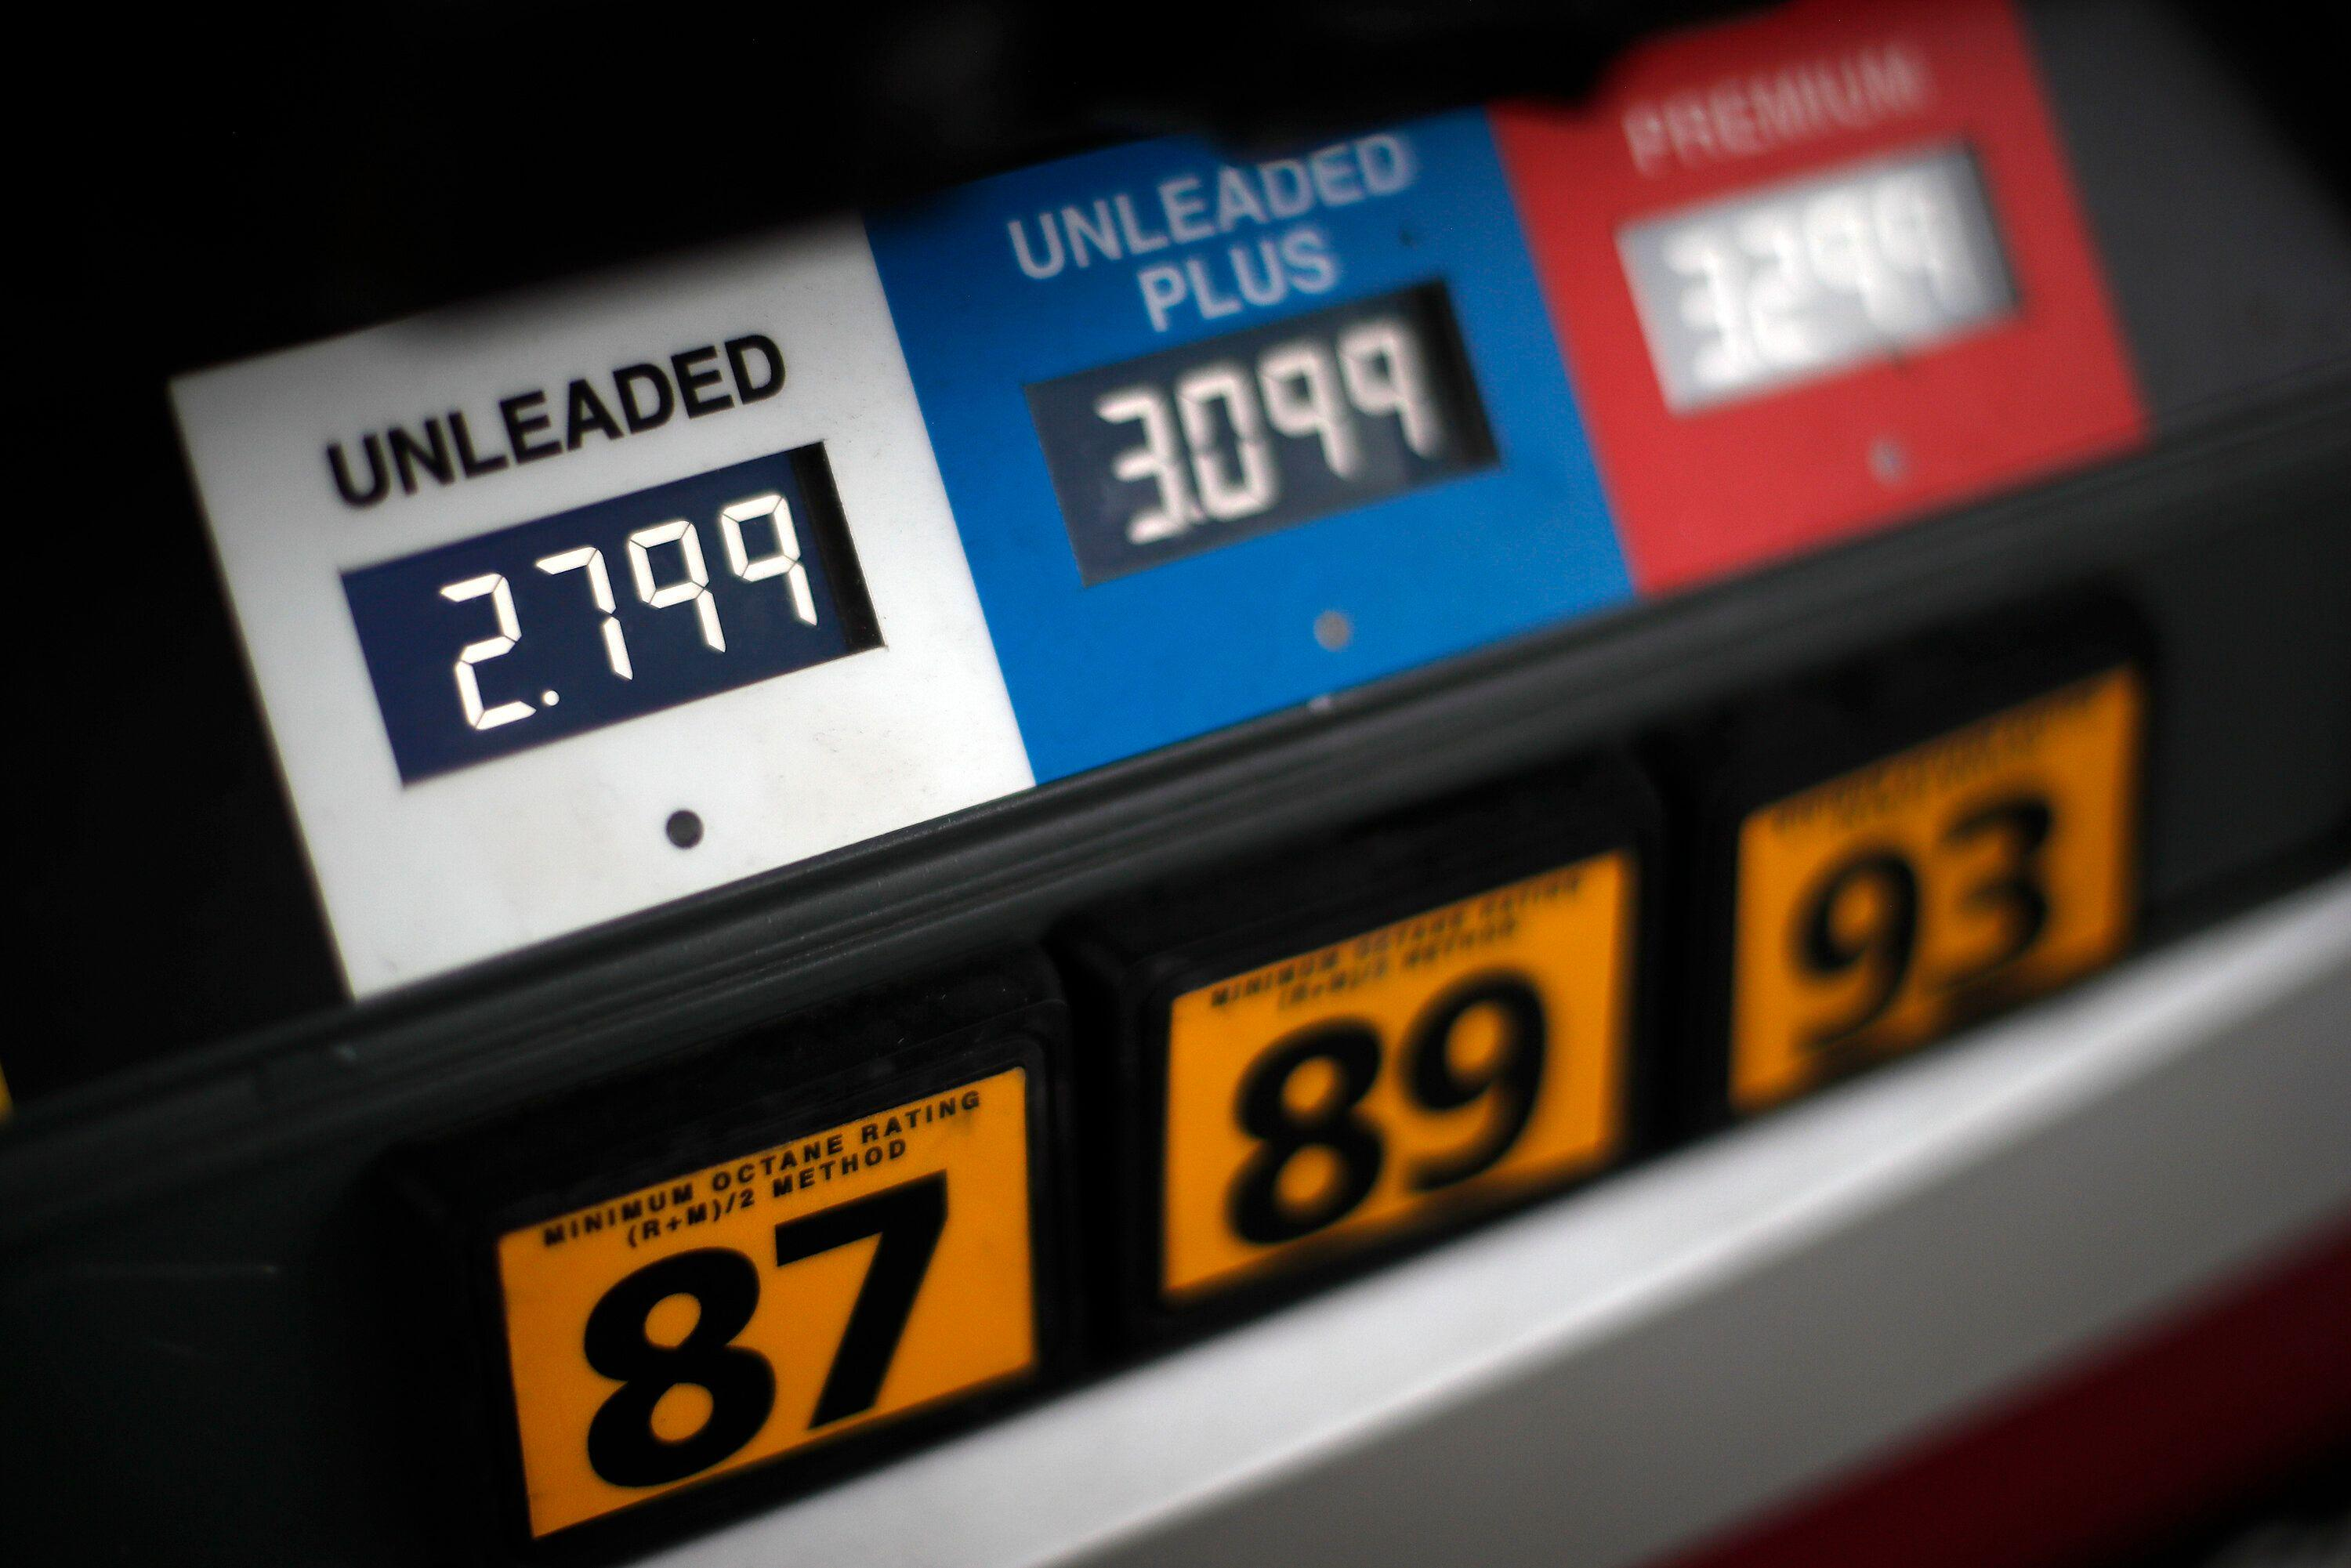 Gas prices have probably peaked, expert says - Yahoo Finance